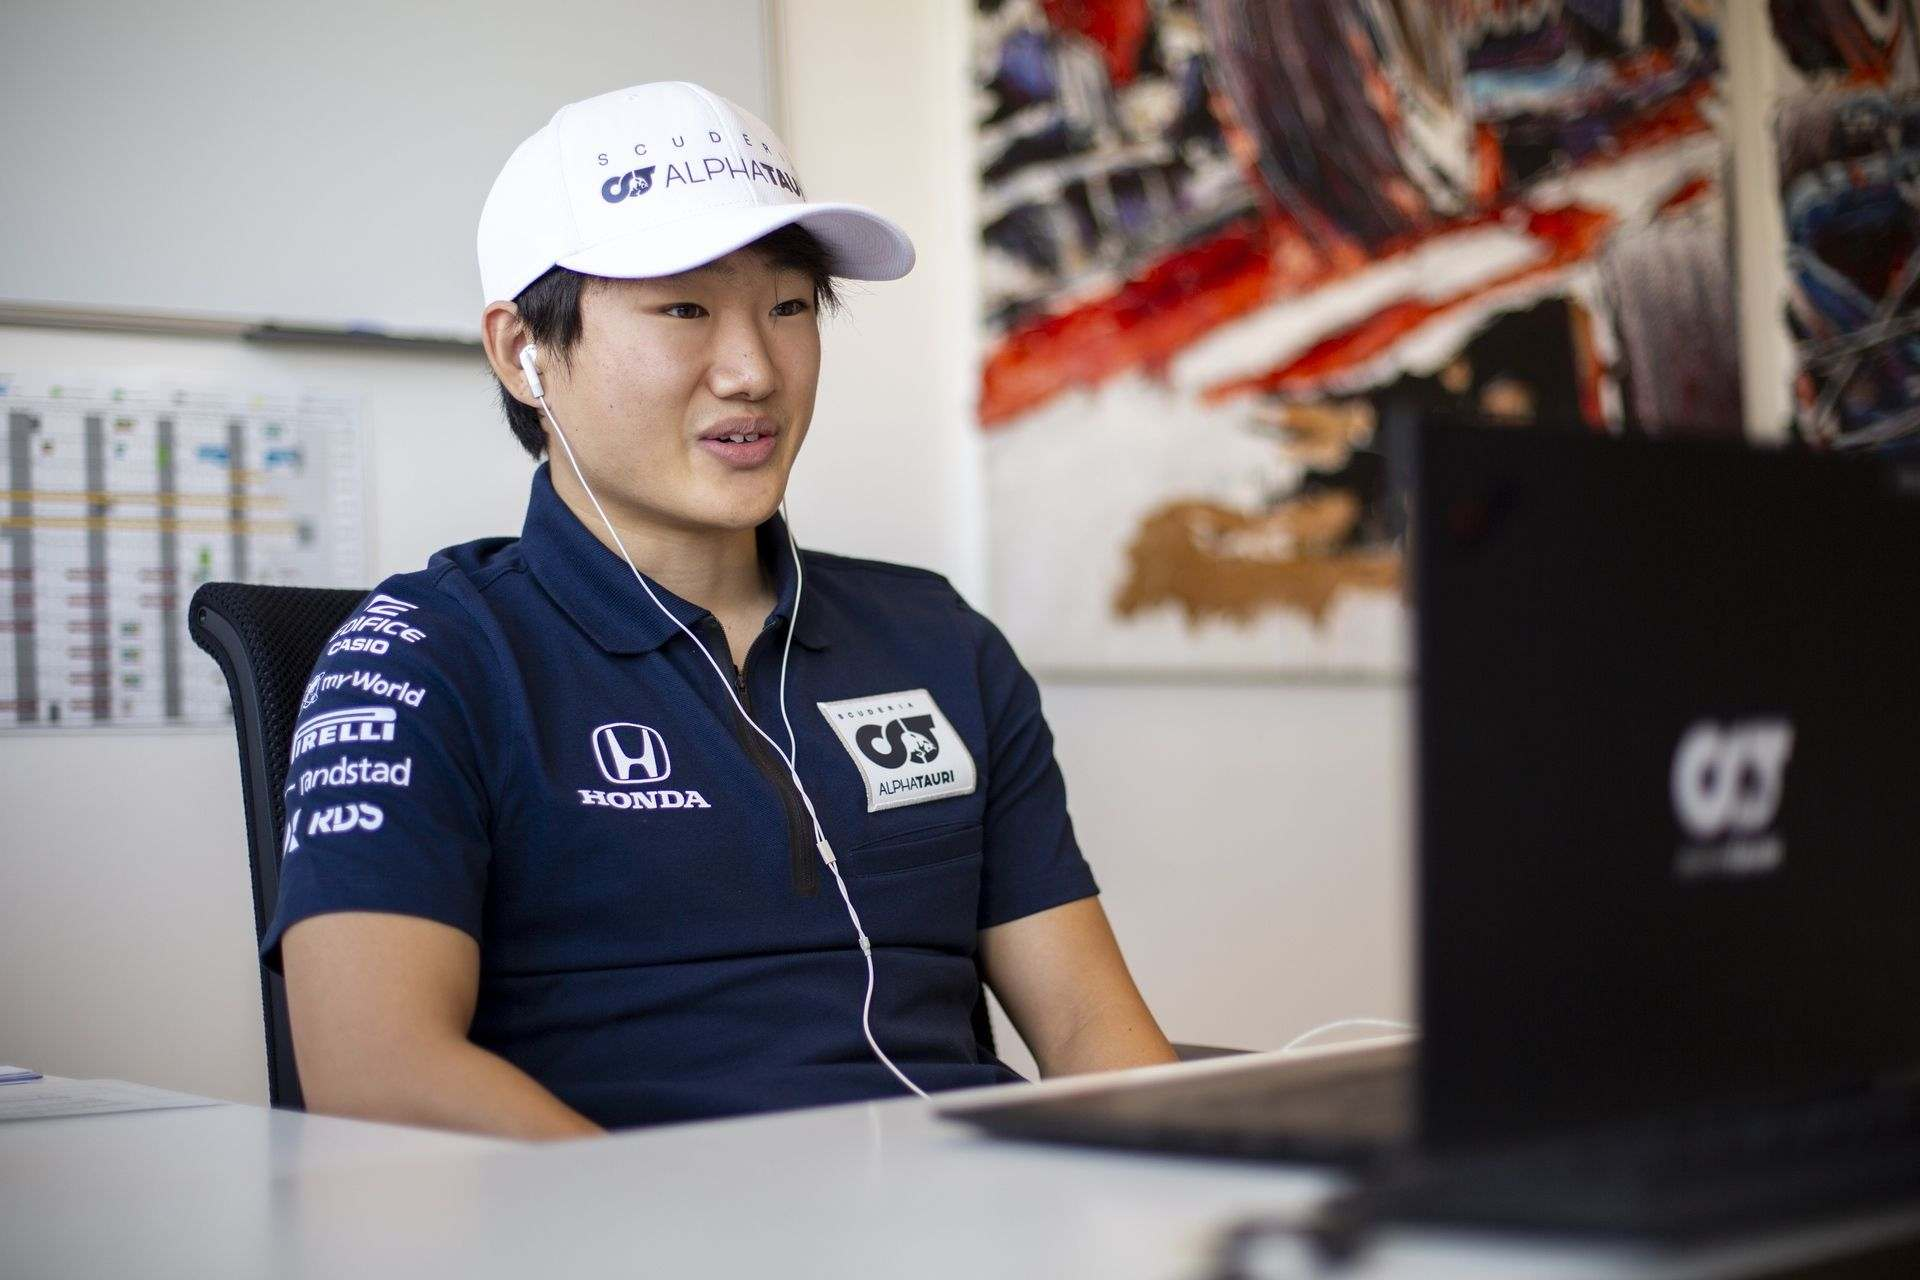 FAENZA, ITALY - OCTOBER 14: Yuki Tsunoda of Japan completes his seat fit and gives online interviews at the Scuderia AlphaTauri factory on October 14, 2020 in Faenza, Italy. (Photo by Josh Kruse/Scuderia AlphaTauri) // Josh Kruse / Scuderia AlphaTauri / Red Bull Content Pool // SI202010140210 // Usage for editorial use only //